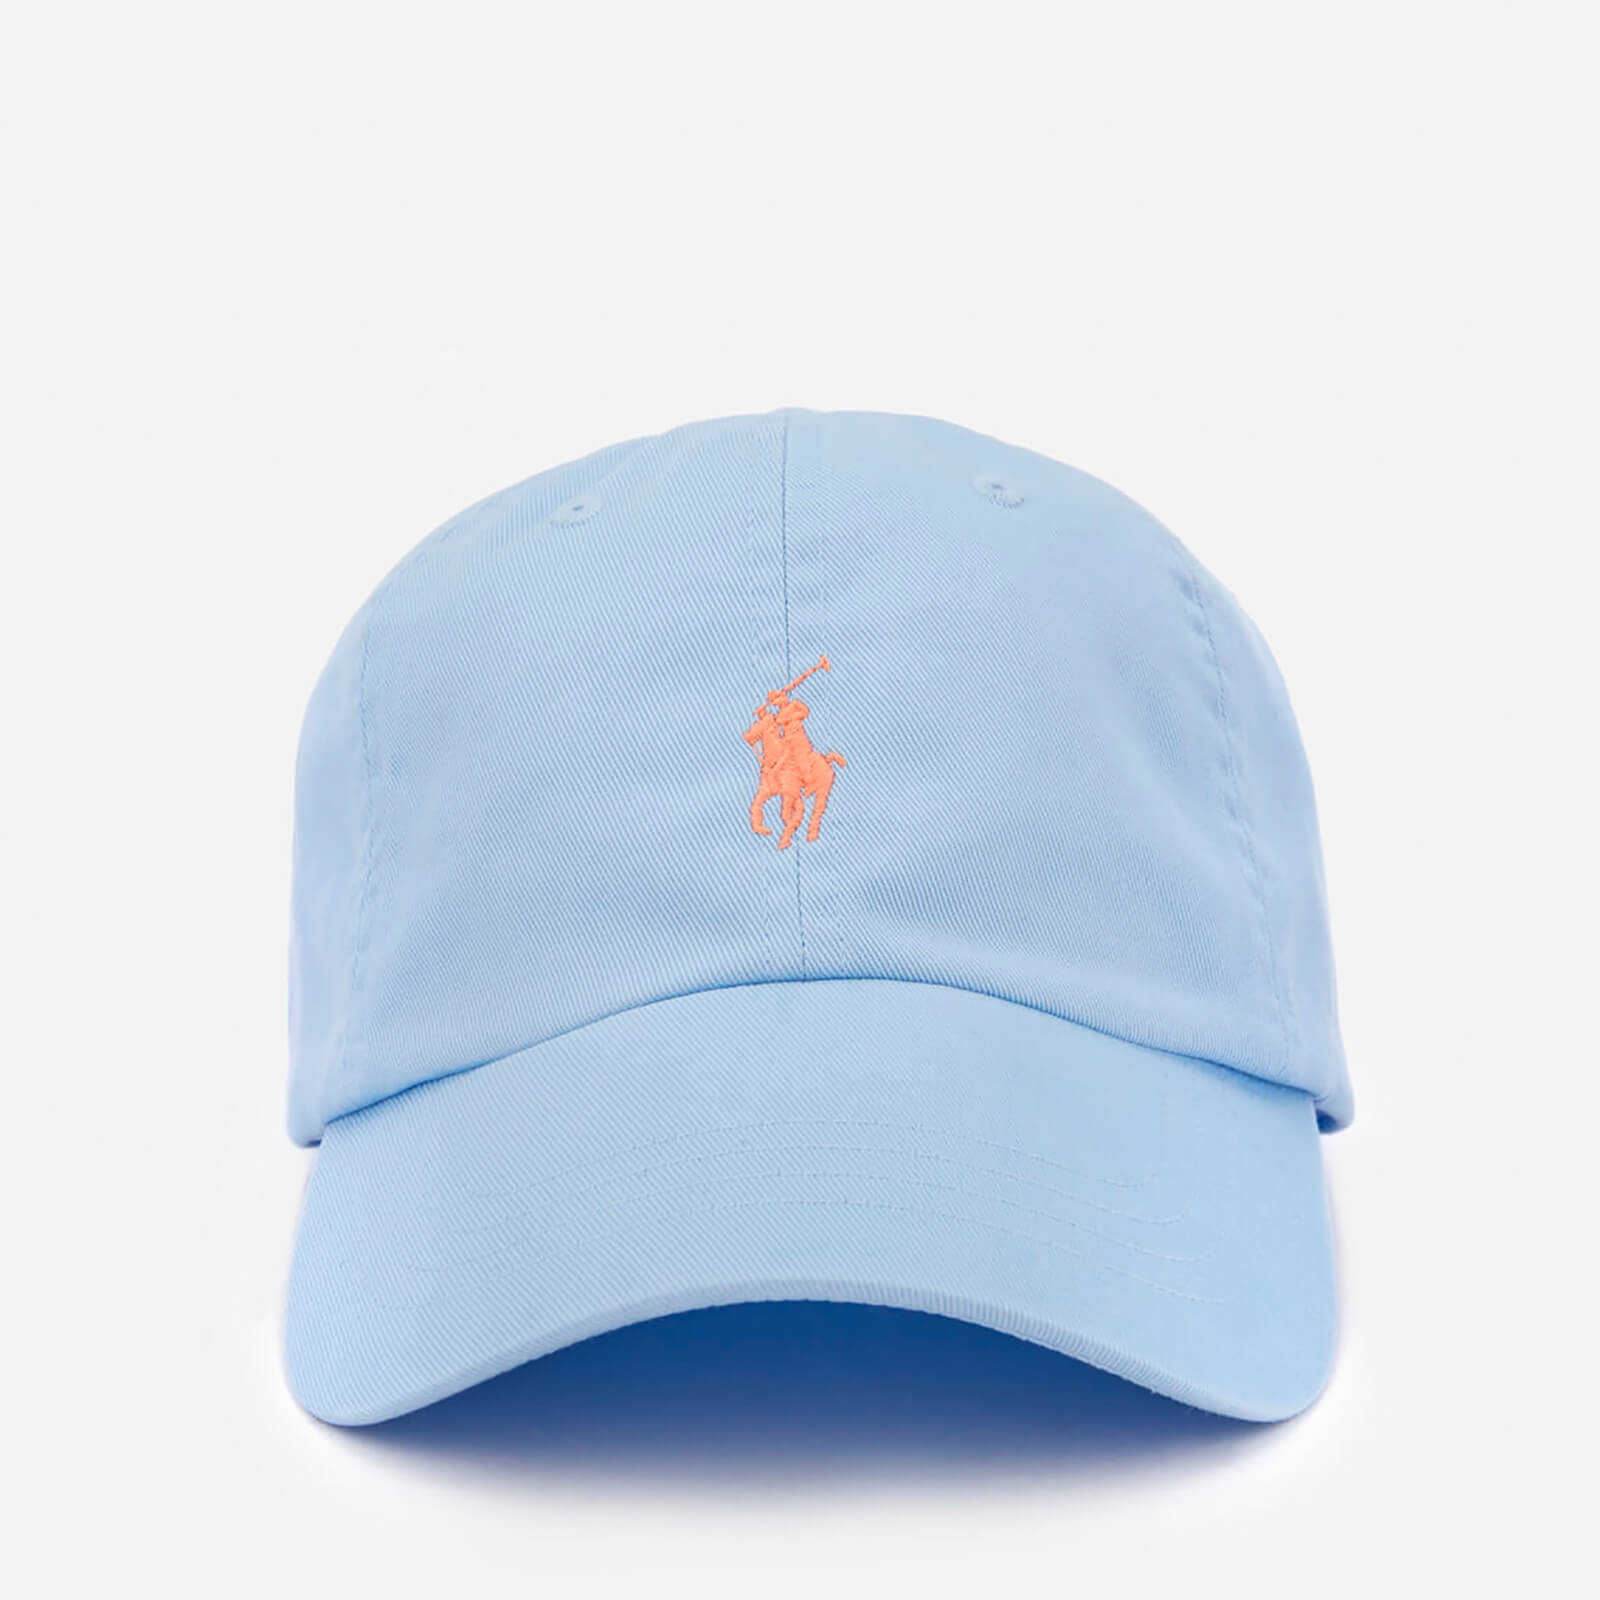 ff19ce208 Polo Ralph Lauren Men s Cap - Pale Blue - Free UK Delivery over £50